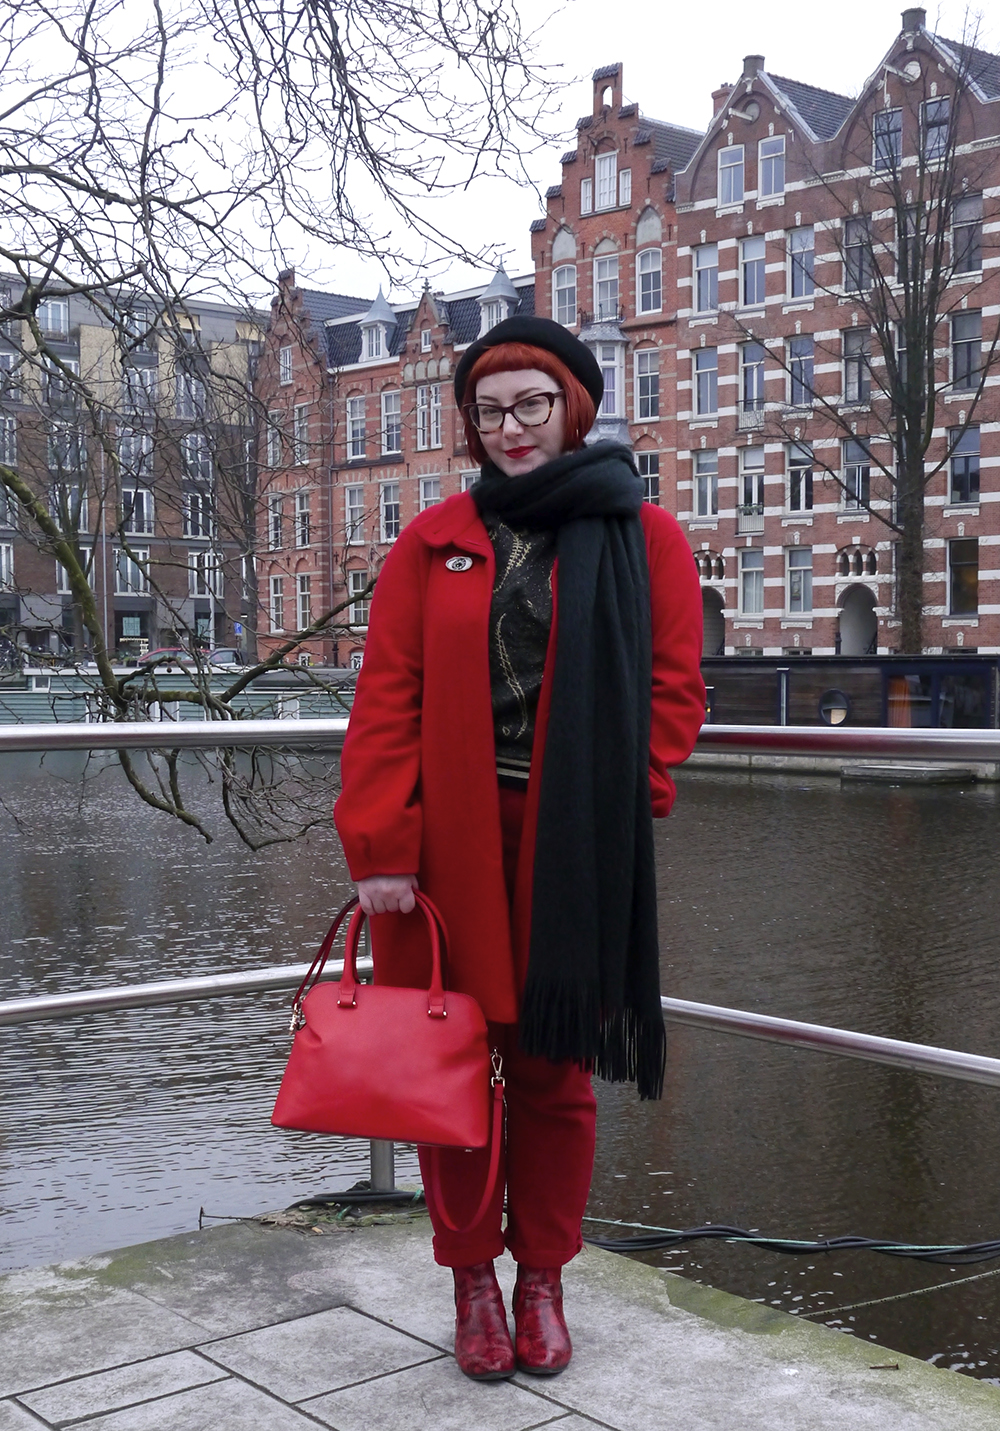 Bright red outfit for a grey Amsterdam day